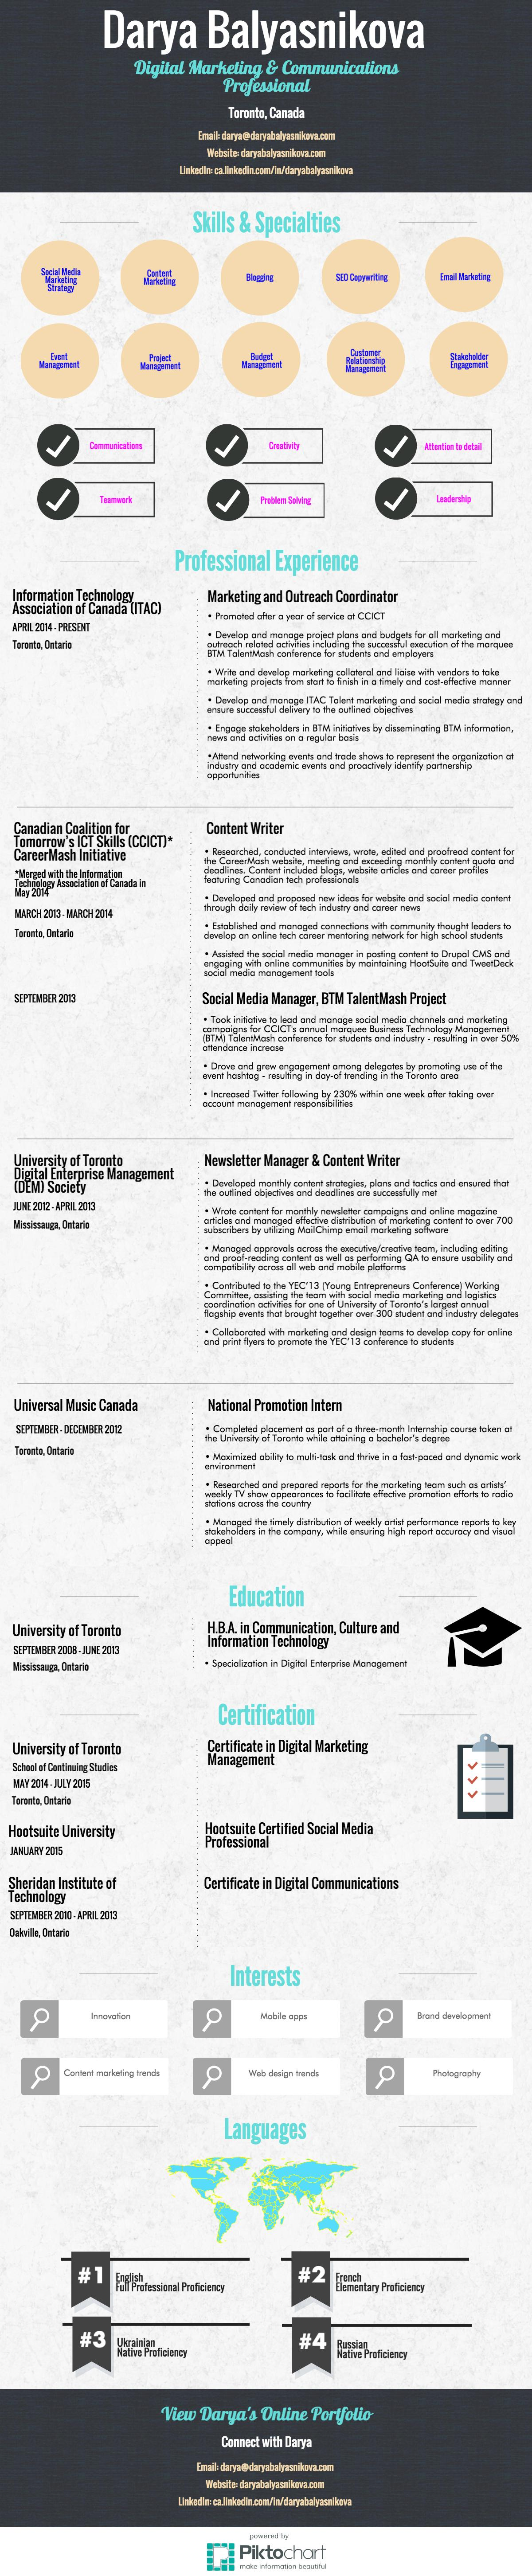 darya balyasnikova digital marketing and communications resume